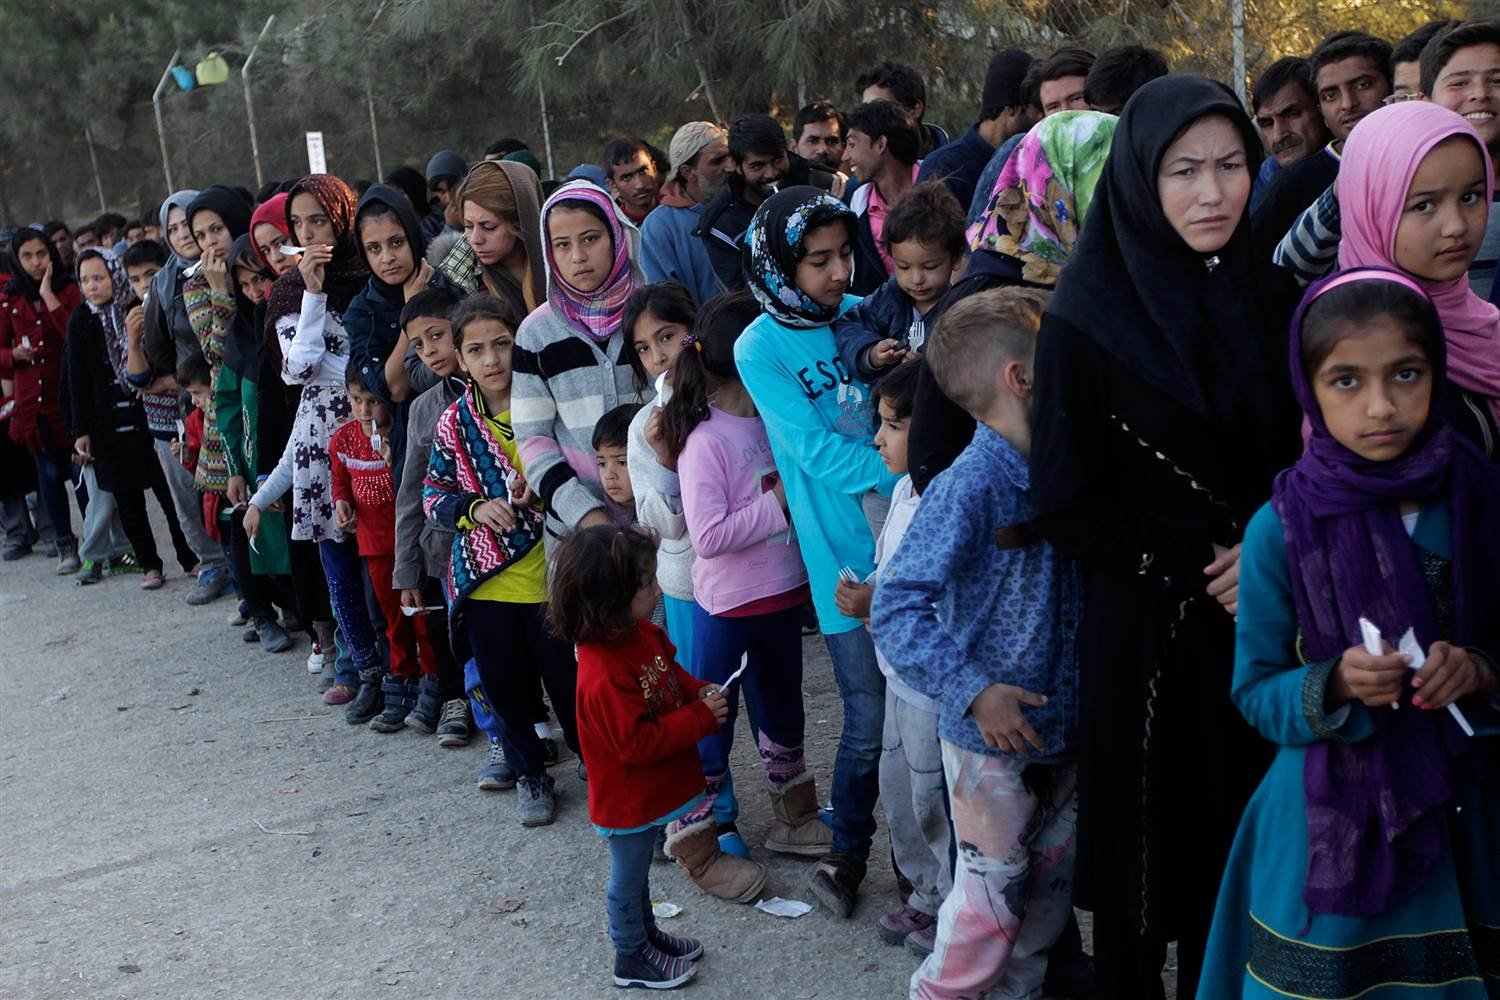 Migrants wait in line to get food in a reception center on the Greek island of Lesbos on Nov. 16, 2015 after crossing the Aegean Sea from Turkey. ORESTIS PANAGIOTOU / EPA